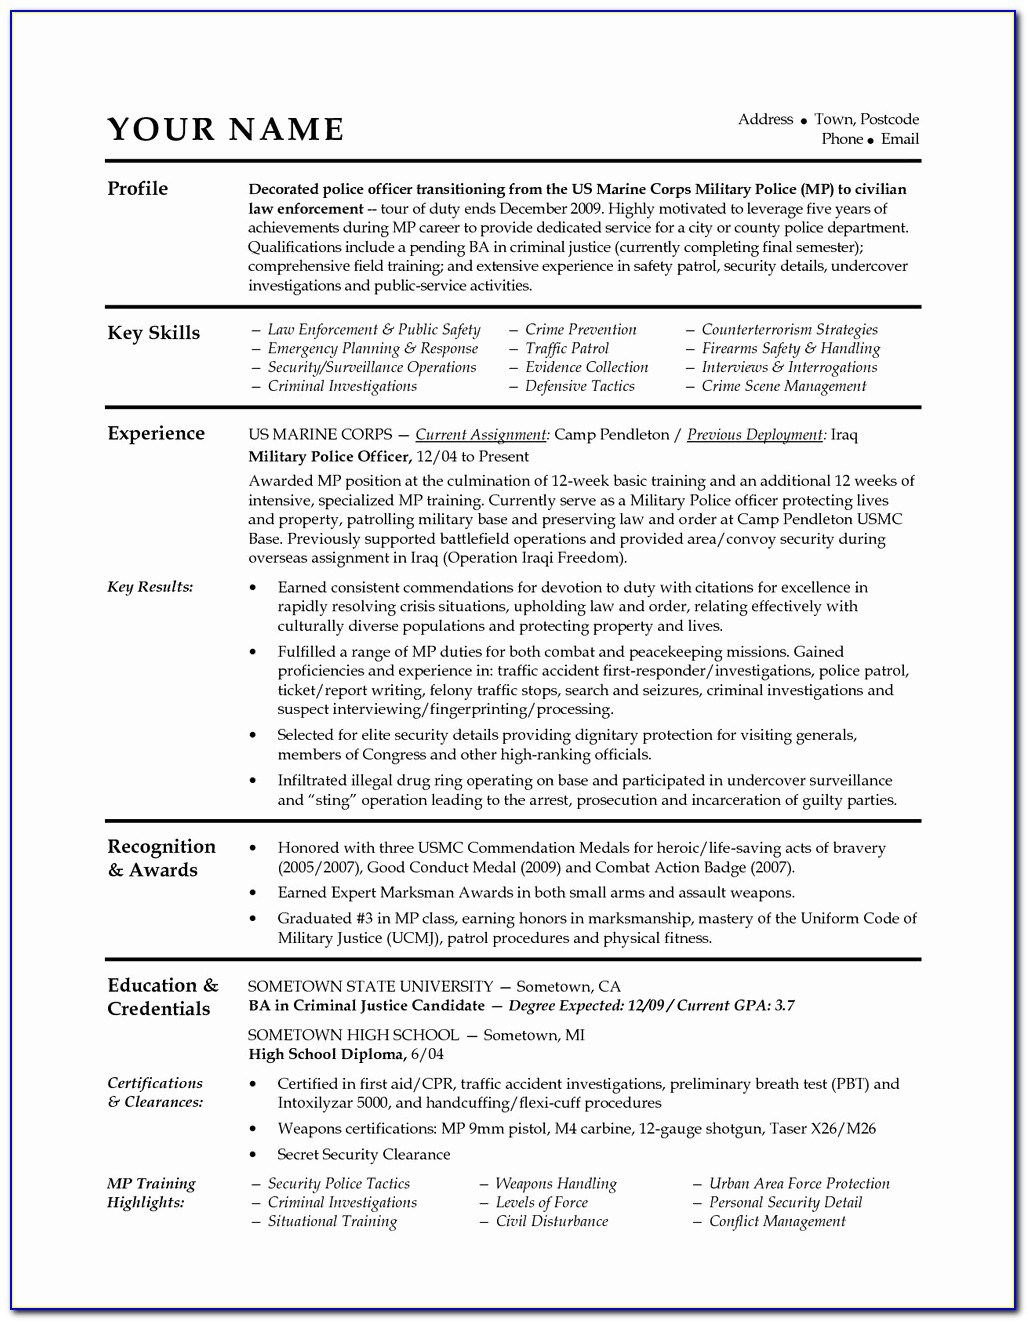 of military resume writing vincegray2014 service companies desktop support engineer Resume Military Resume Service